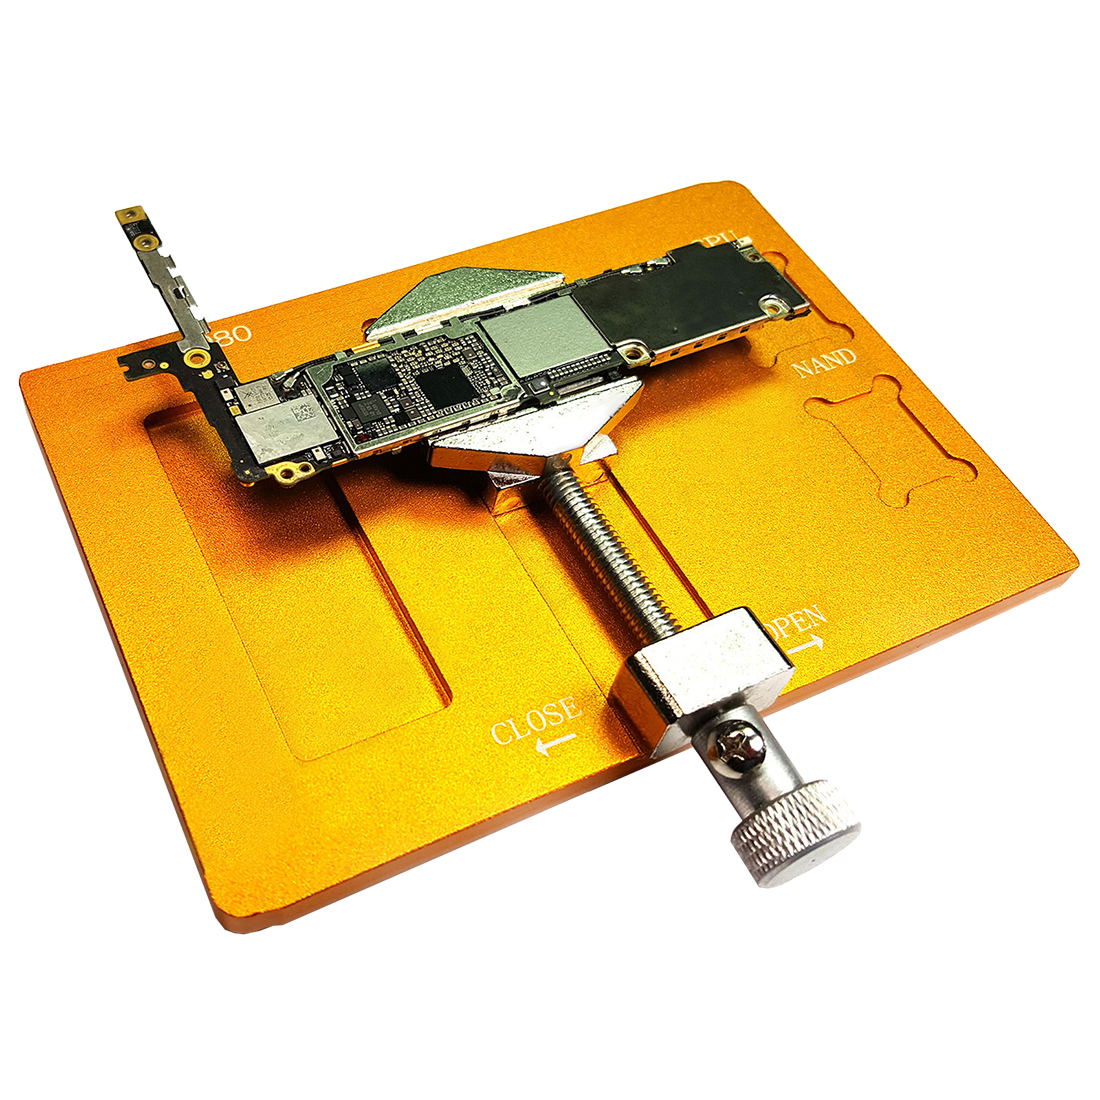 Mobile Phone Cellphone Pcb Fixtures Repairing Circuit Boards Holder Repair Of A Board Used In Pc Computer Royalty Free Clip Tool K4k6